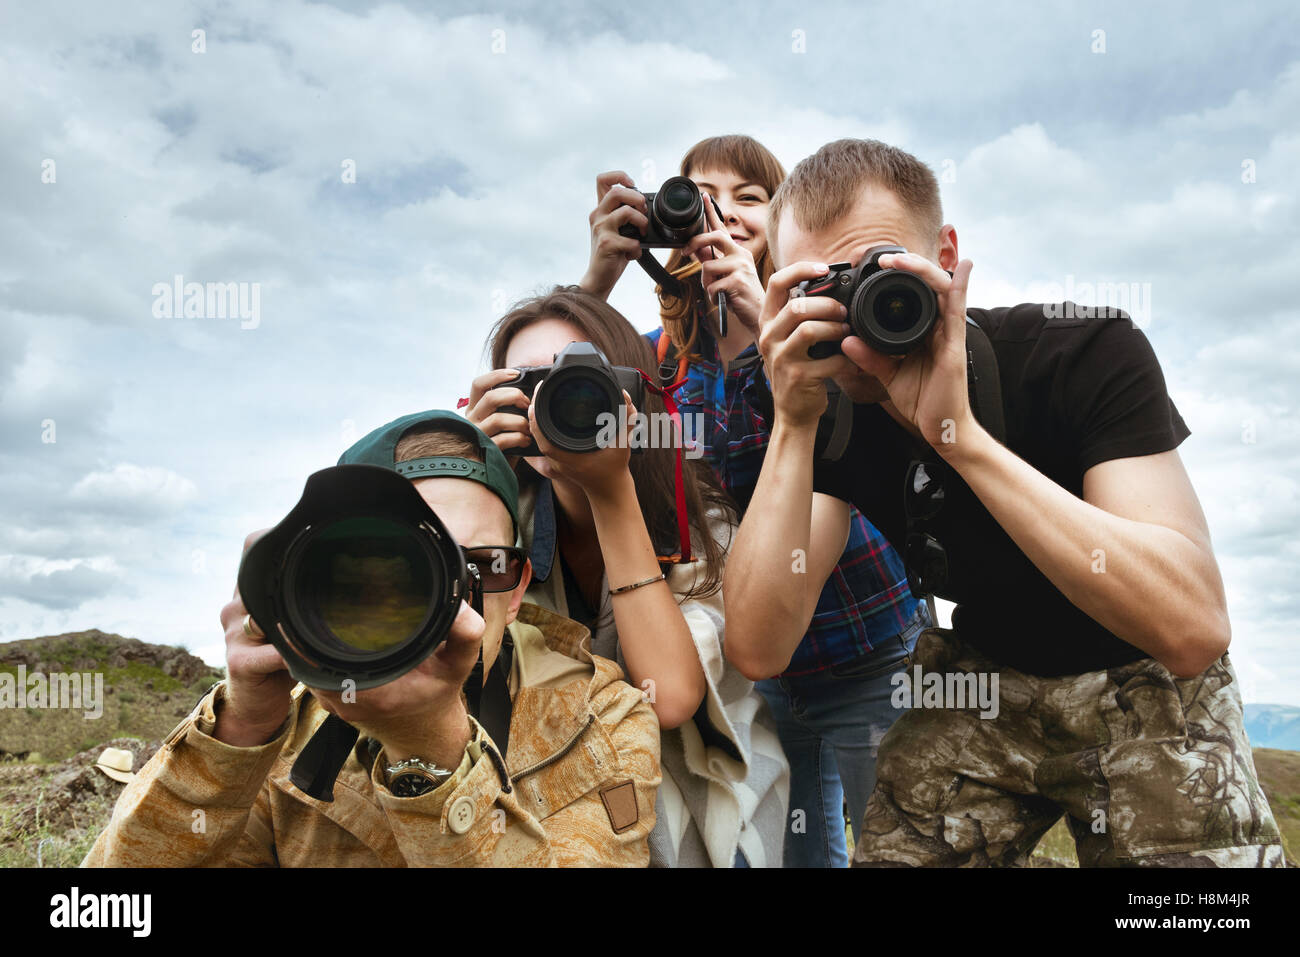 Group friends photographers taking photo - Stock Image